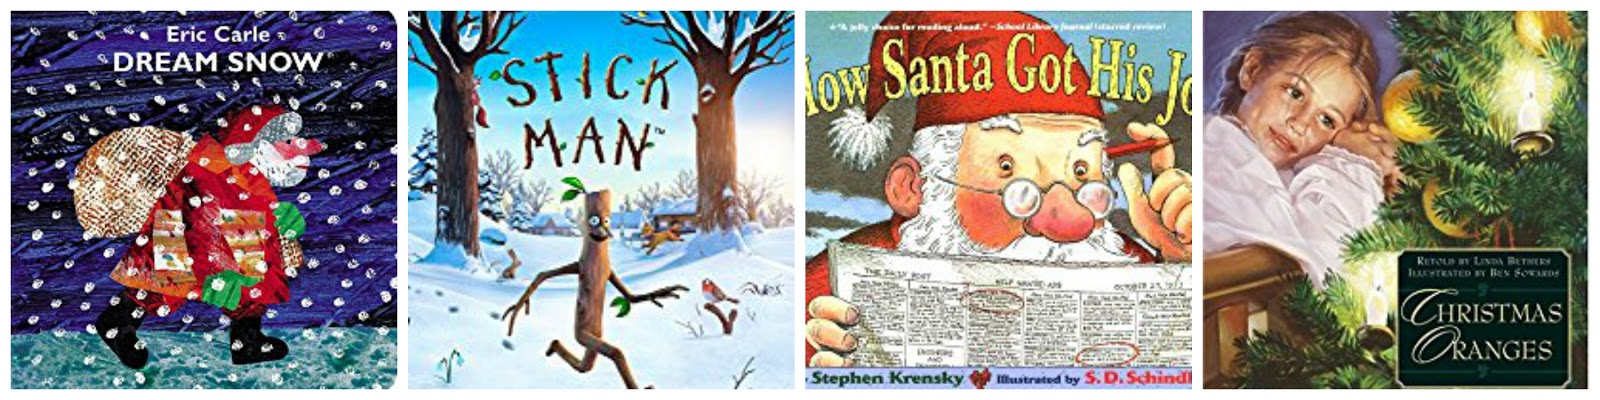 christmas story recommendations christmas stories for children christmas book - Best Christmas Books For Kids